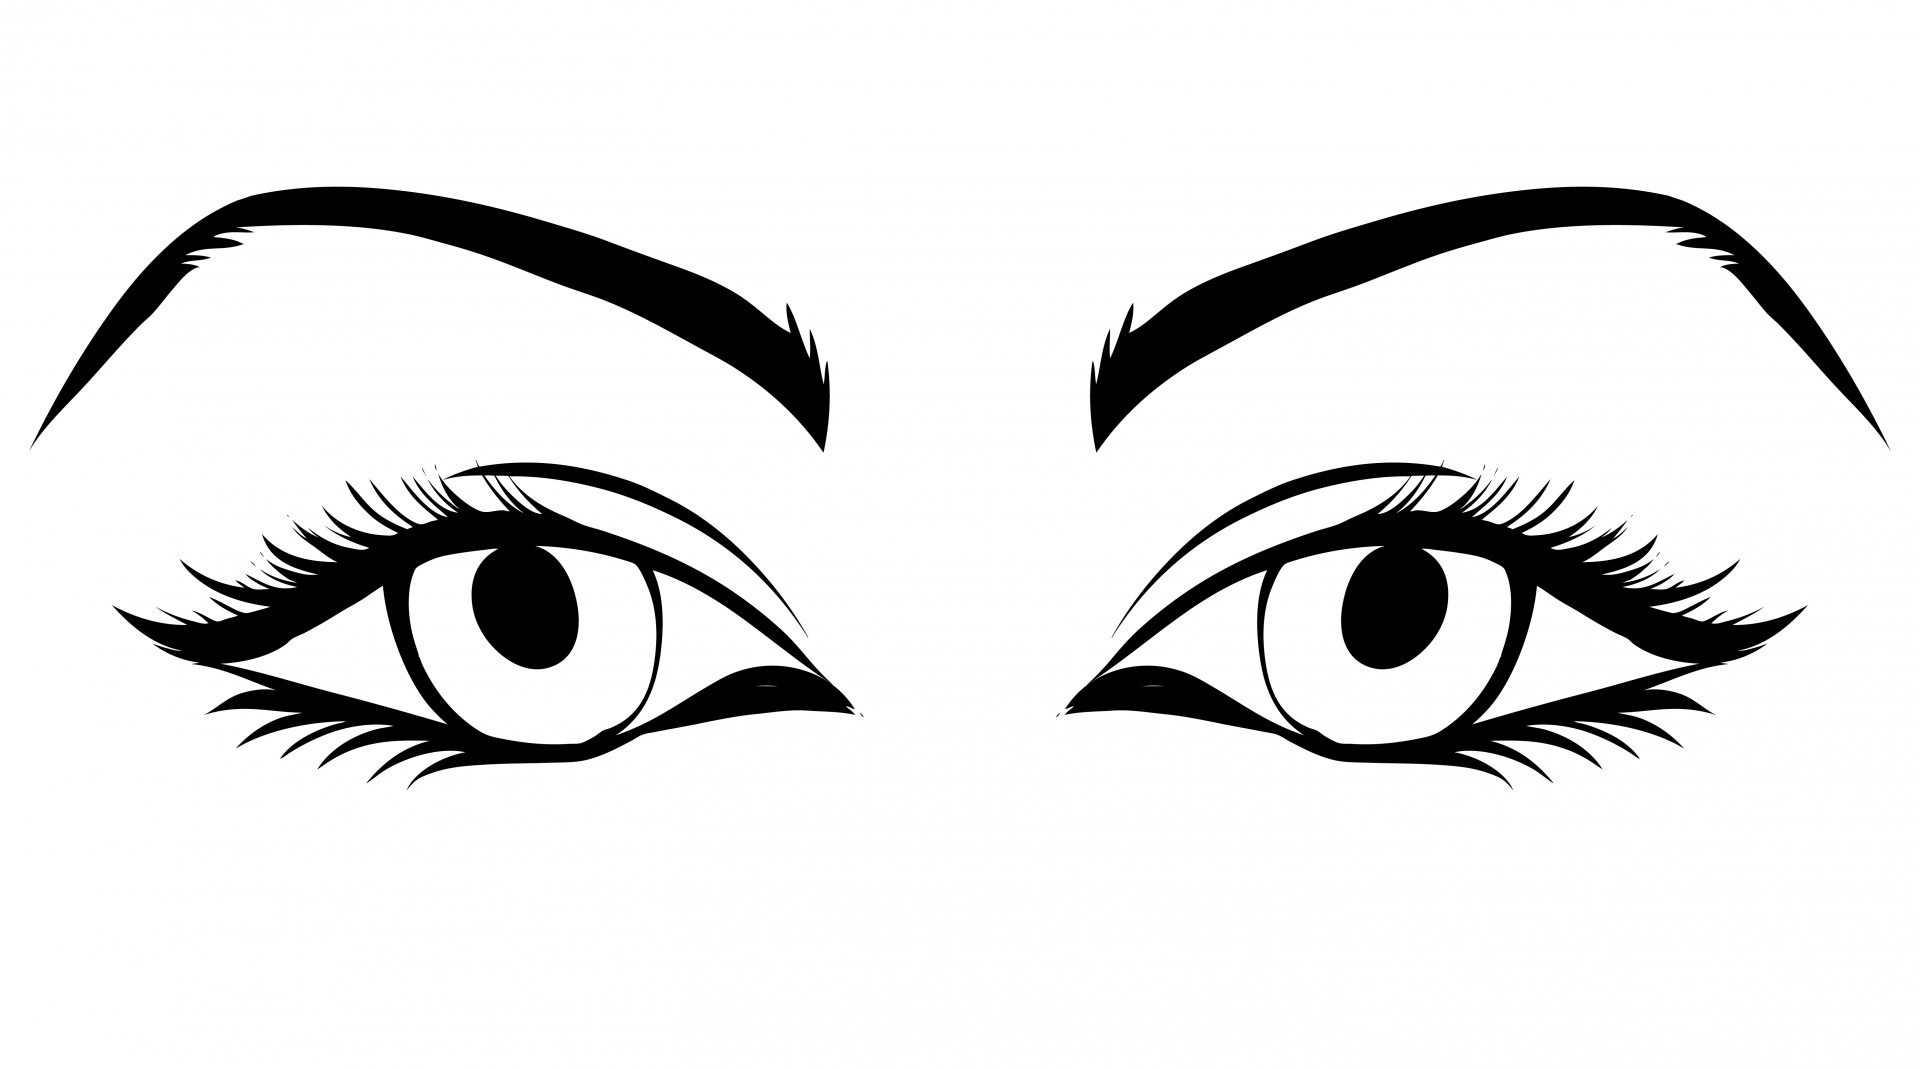 Eye clipart. Eyes of woman free